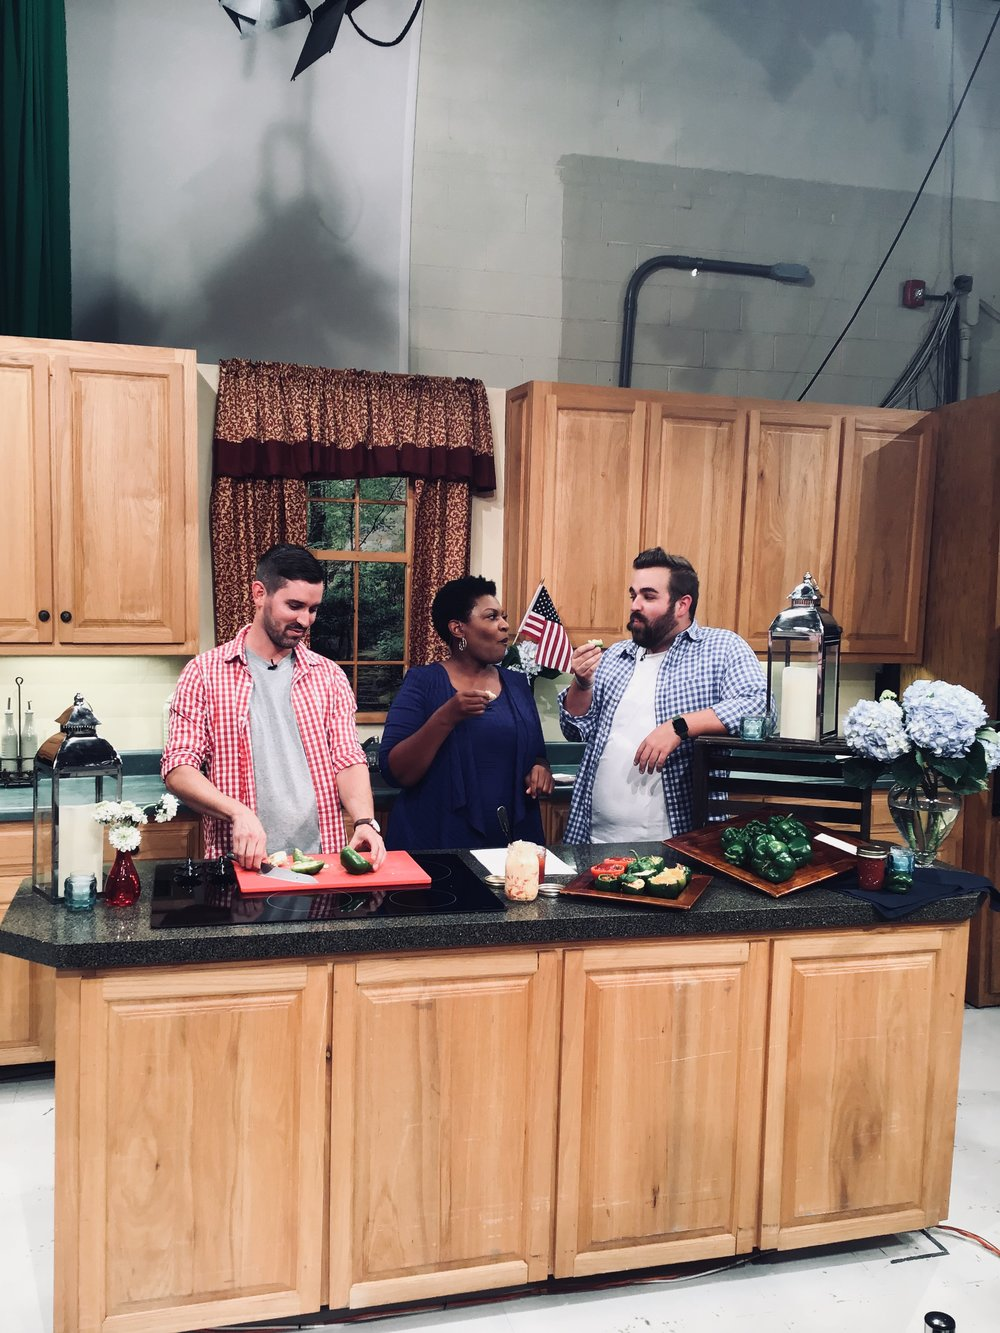 WSFA 12 News - Tim Essay, co-owner of Cahawba House, went on the WSFA  12 News set showing the best eats for Independence Day. Tim prepared peppers stuffed with our signature pimento cheese and mommas meatloaf.